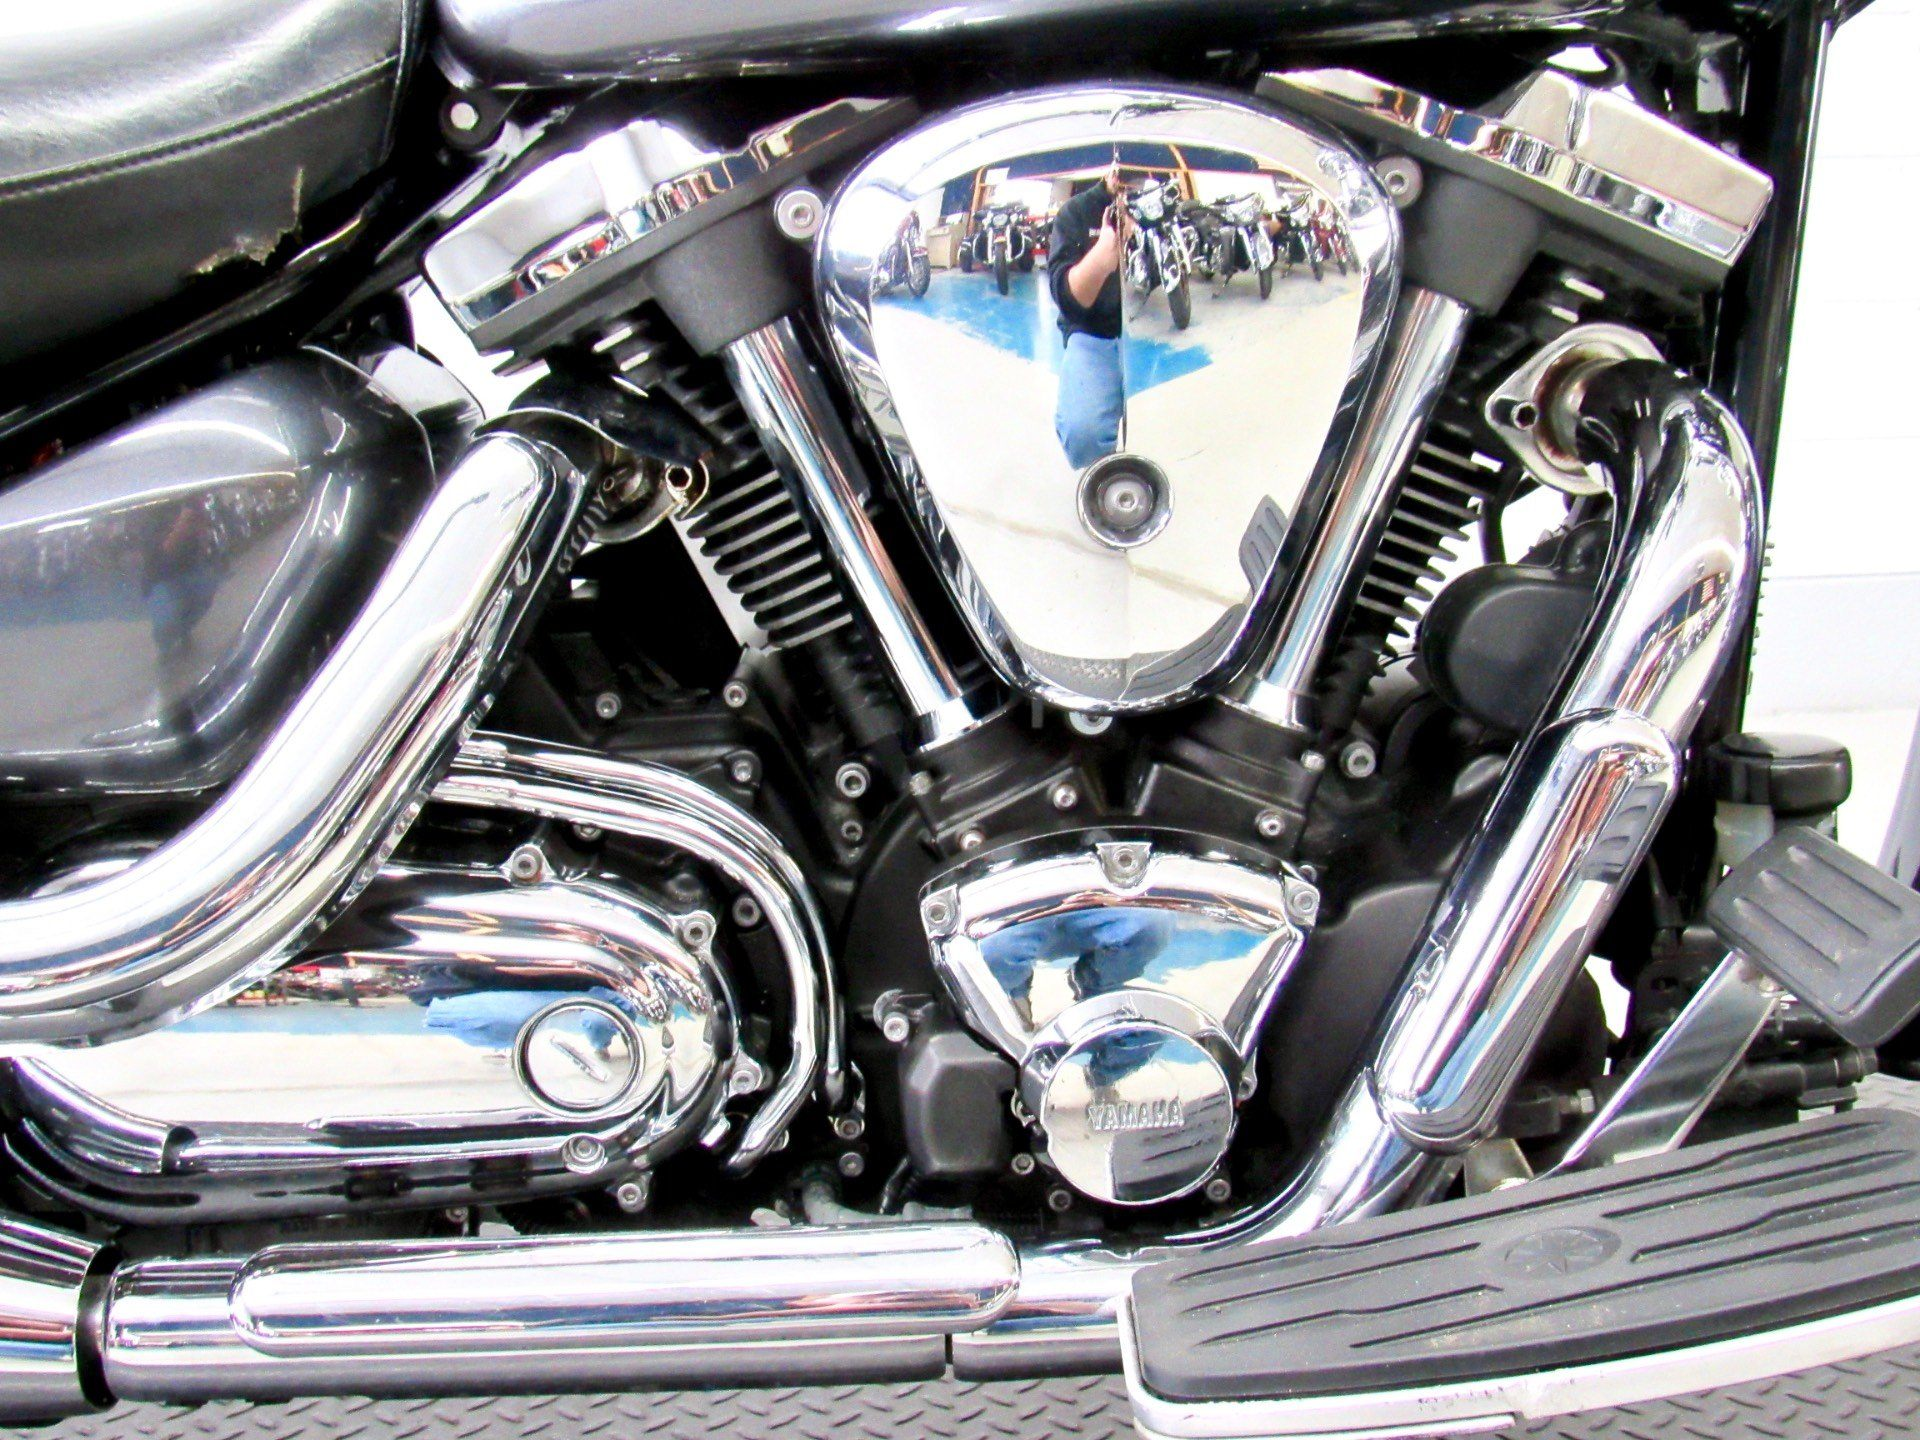 2014 Yamaha Road Star Silverado S in Fredericksburg, Virginia - Photo 14